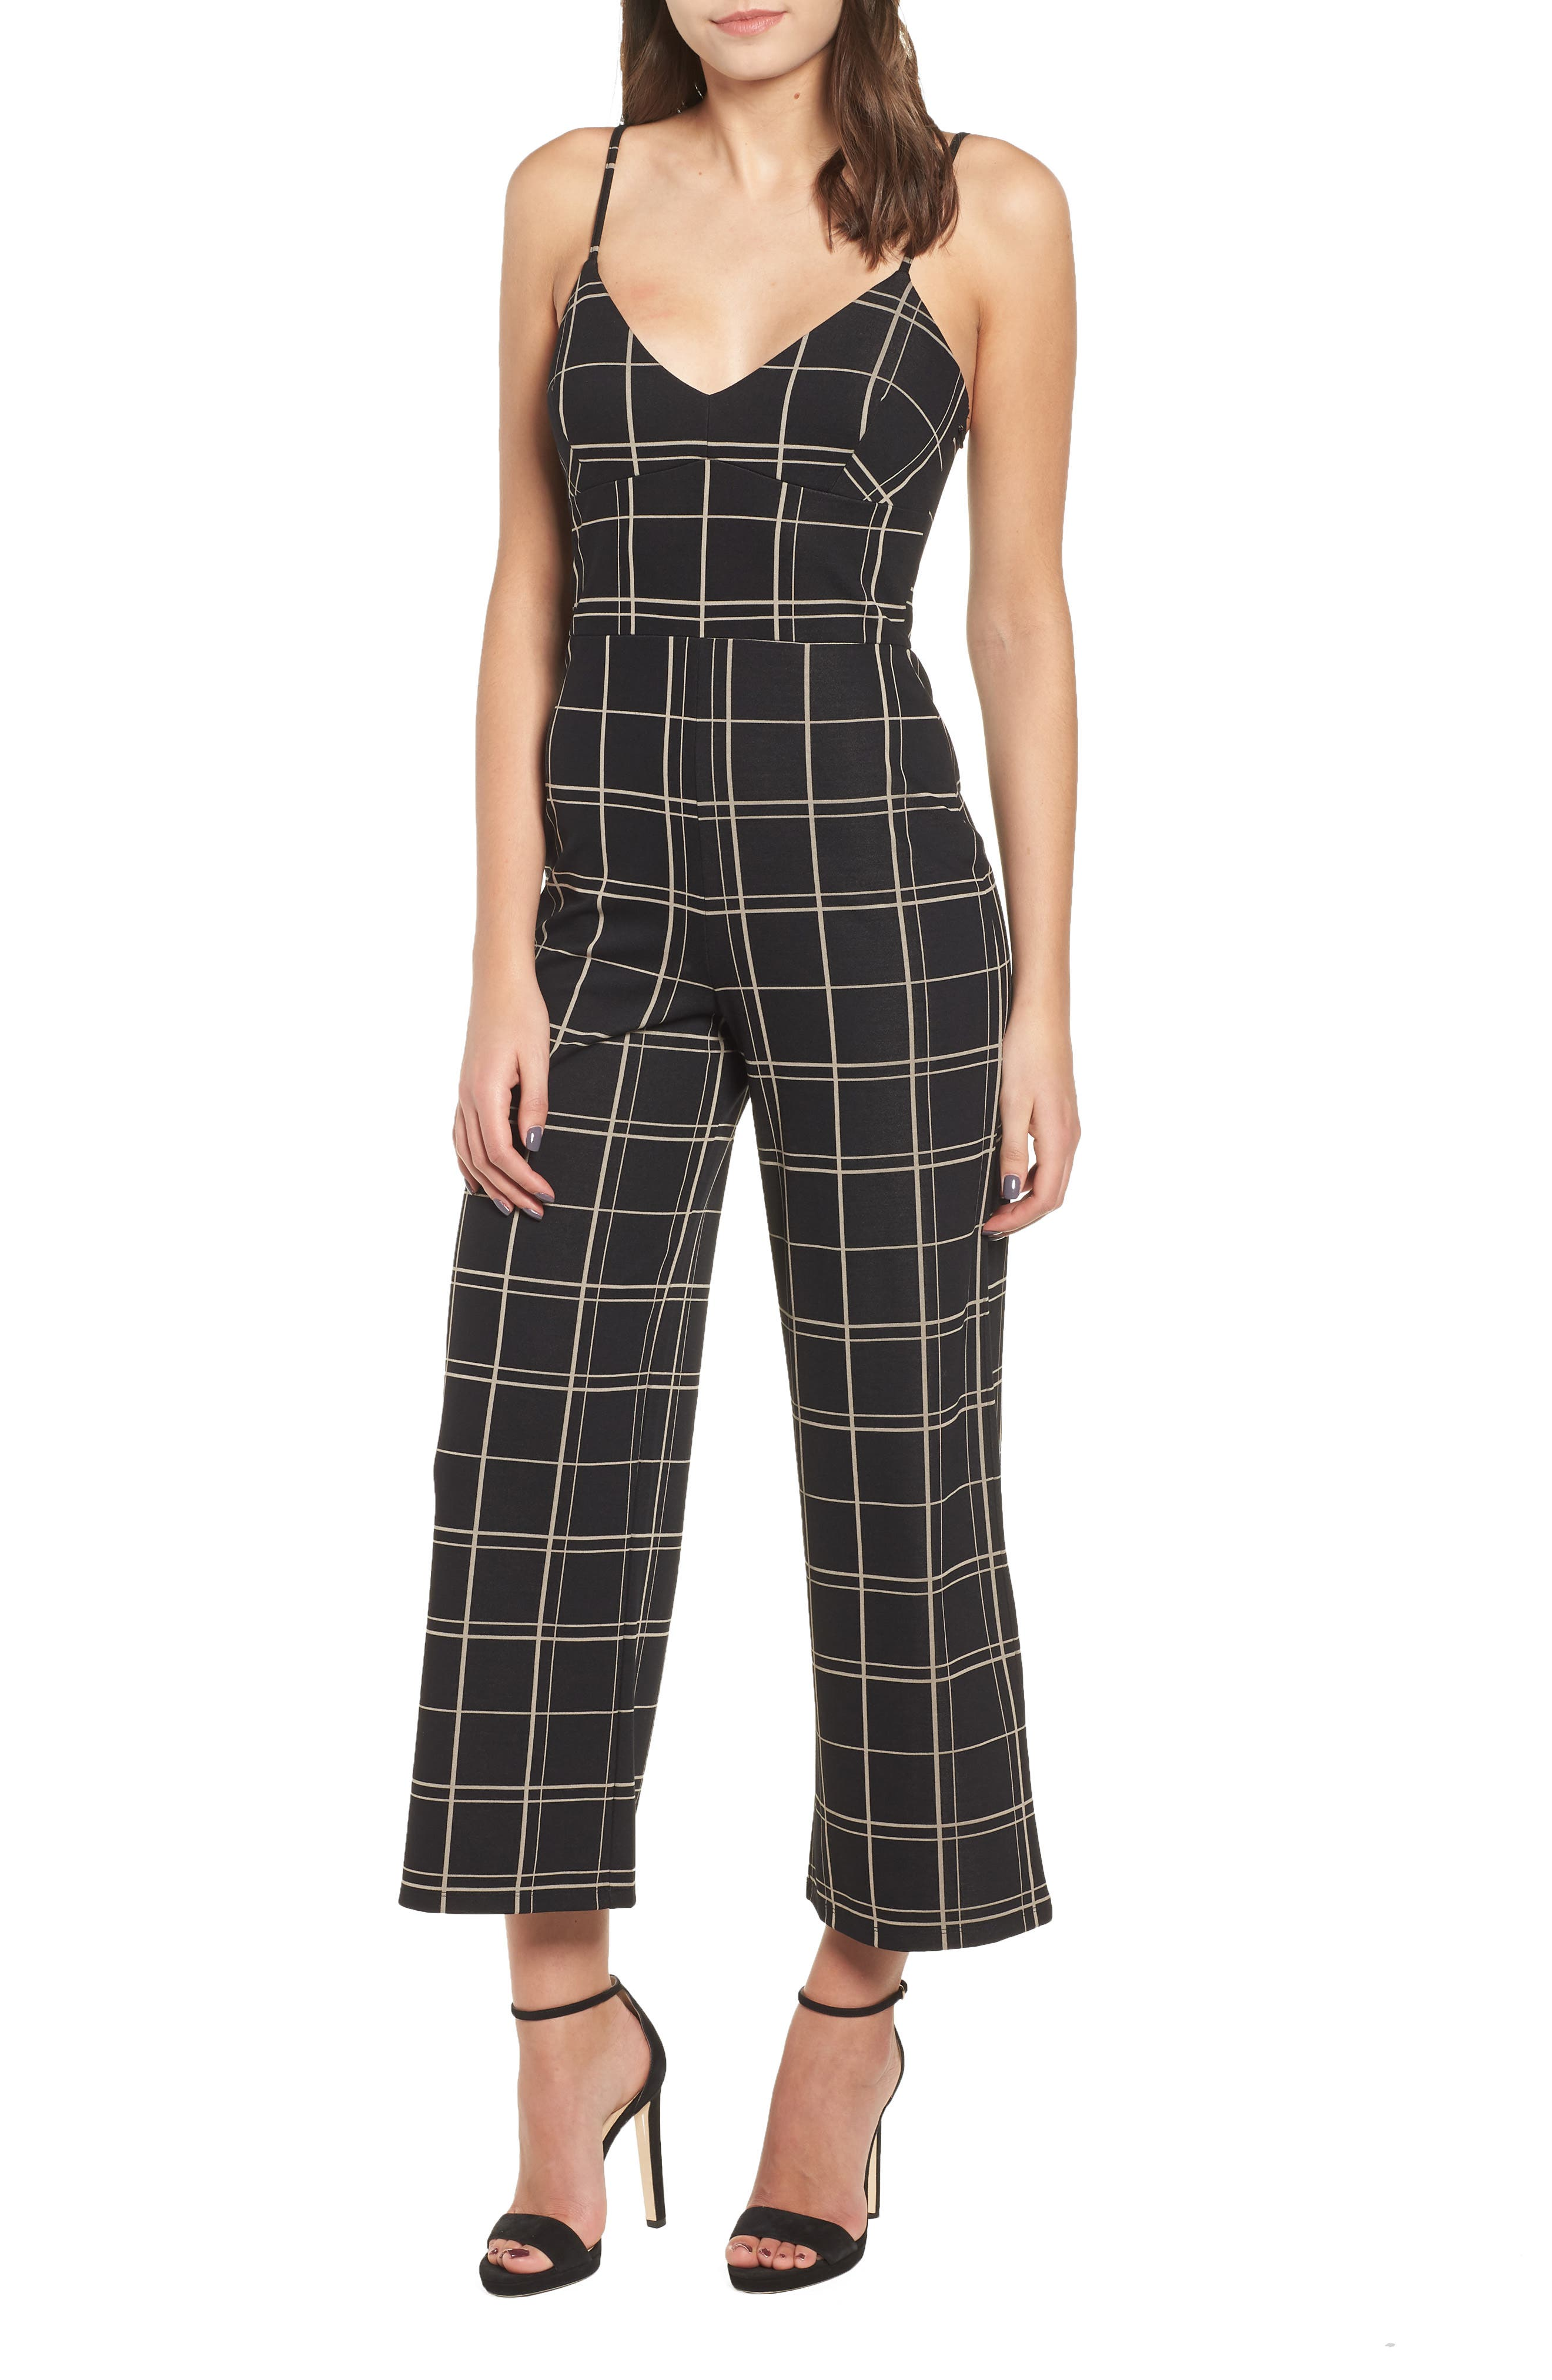 Windowpane Check Jumpsuit,                         Main,                         color, BLACK GLAM CITY WINDOWS